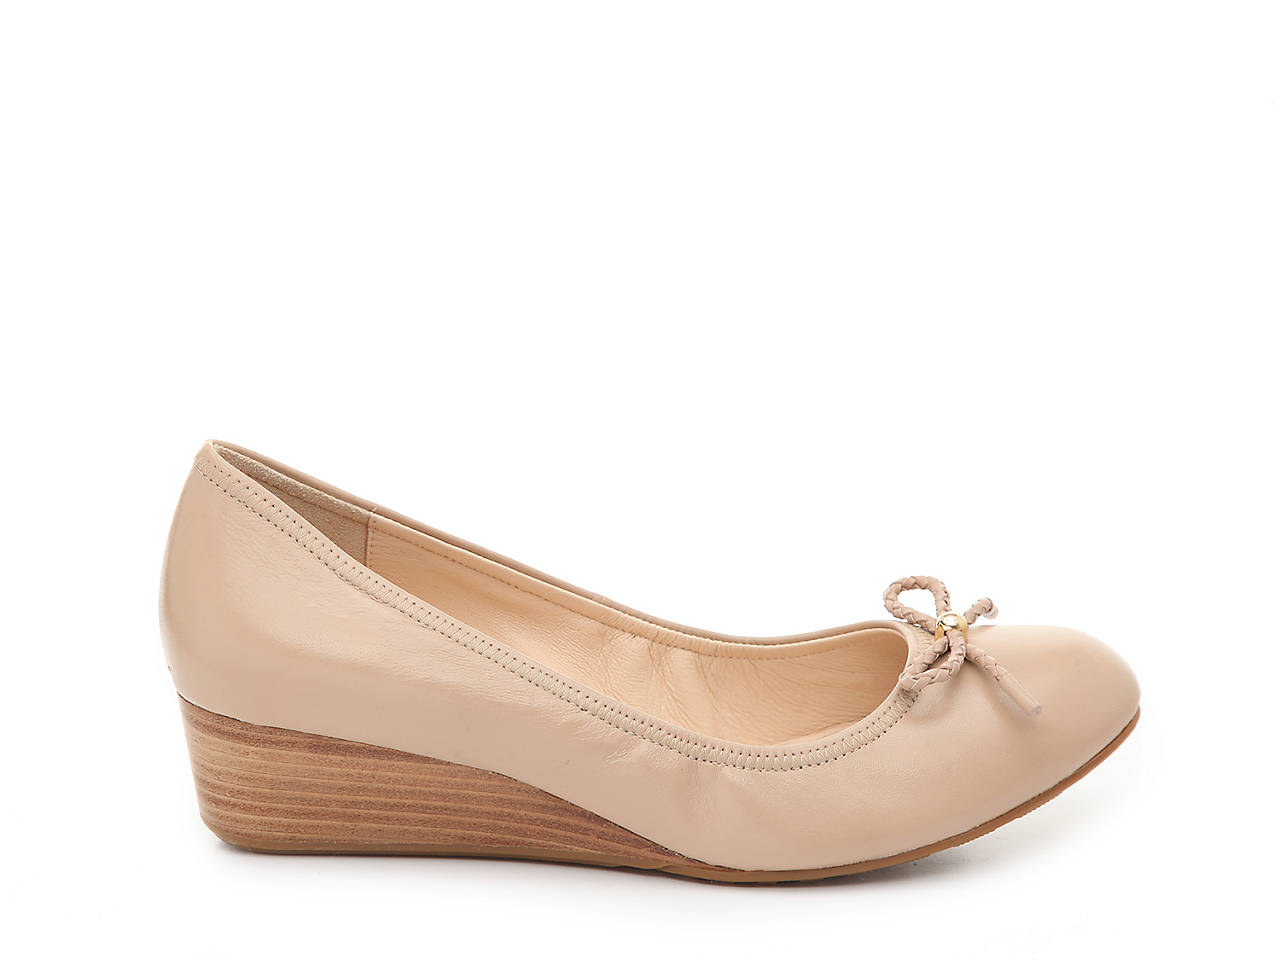 2c797263b3c Cole Haan Tali Wedge Pump Women s Shoes